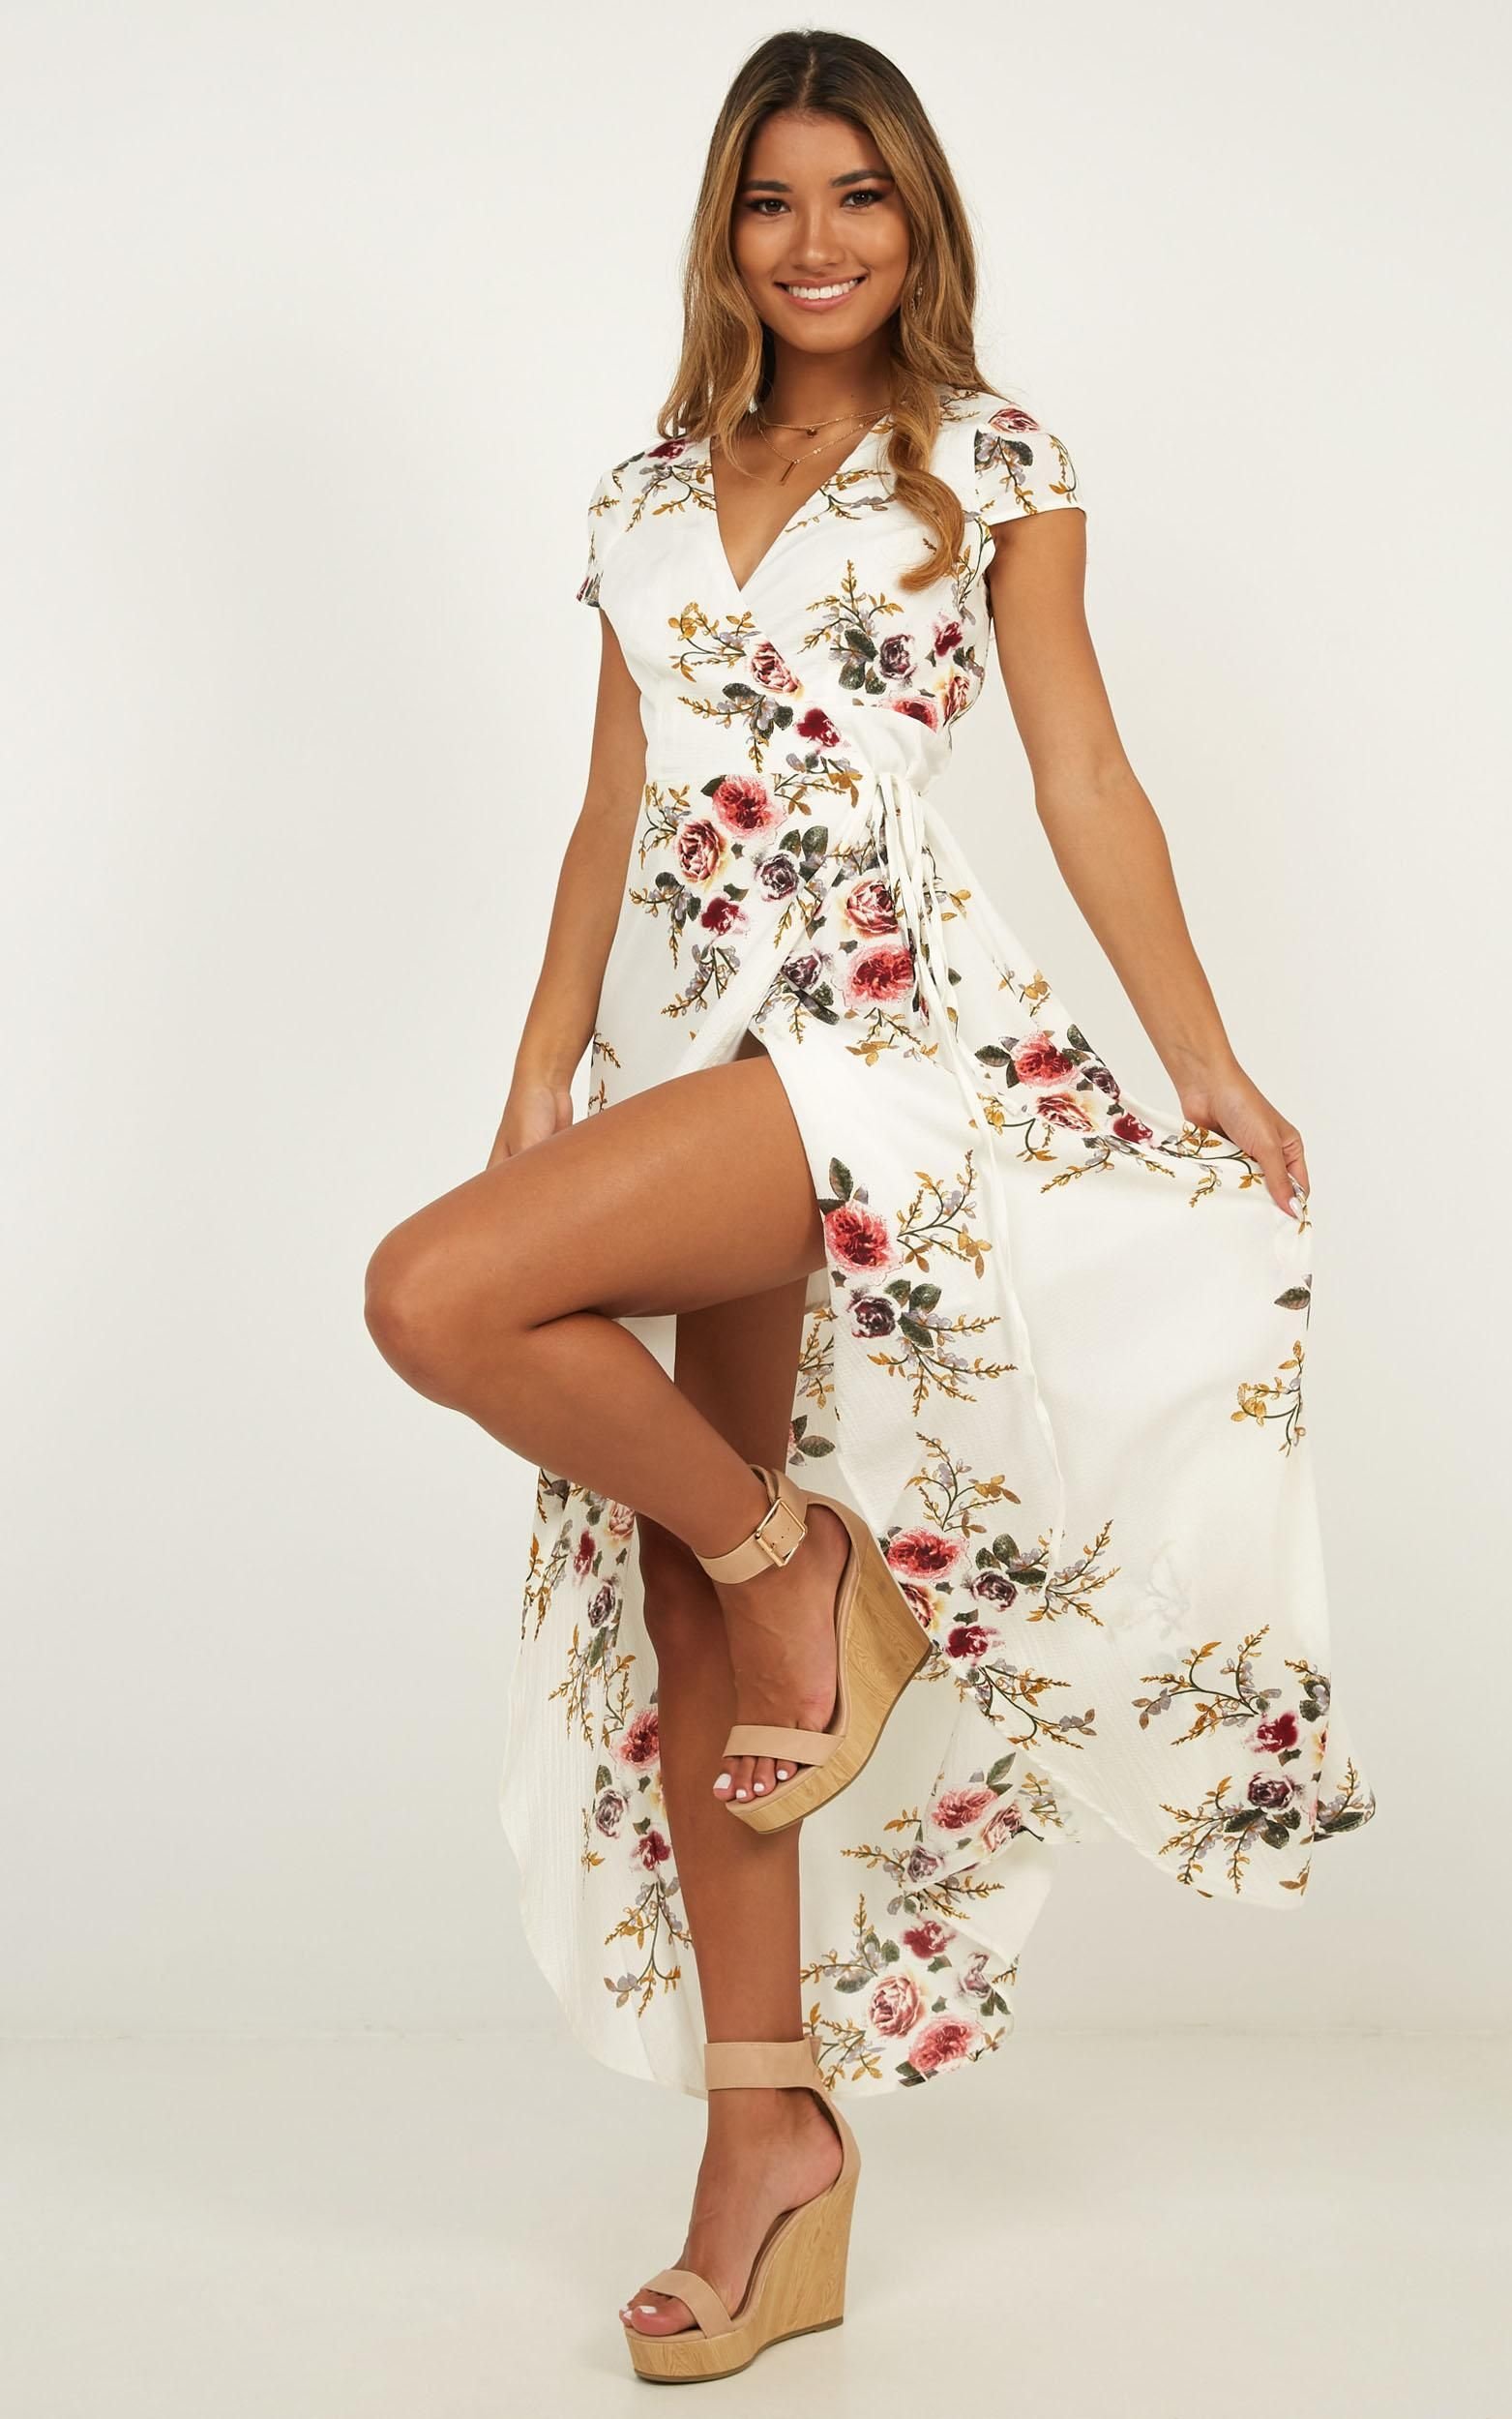 2020 Women Dress Casual Dress Print Plus Size Clothing Websites Business Casual And Jeans